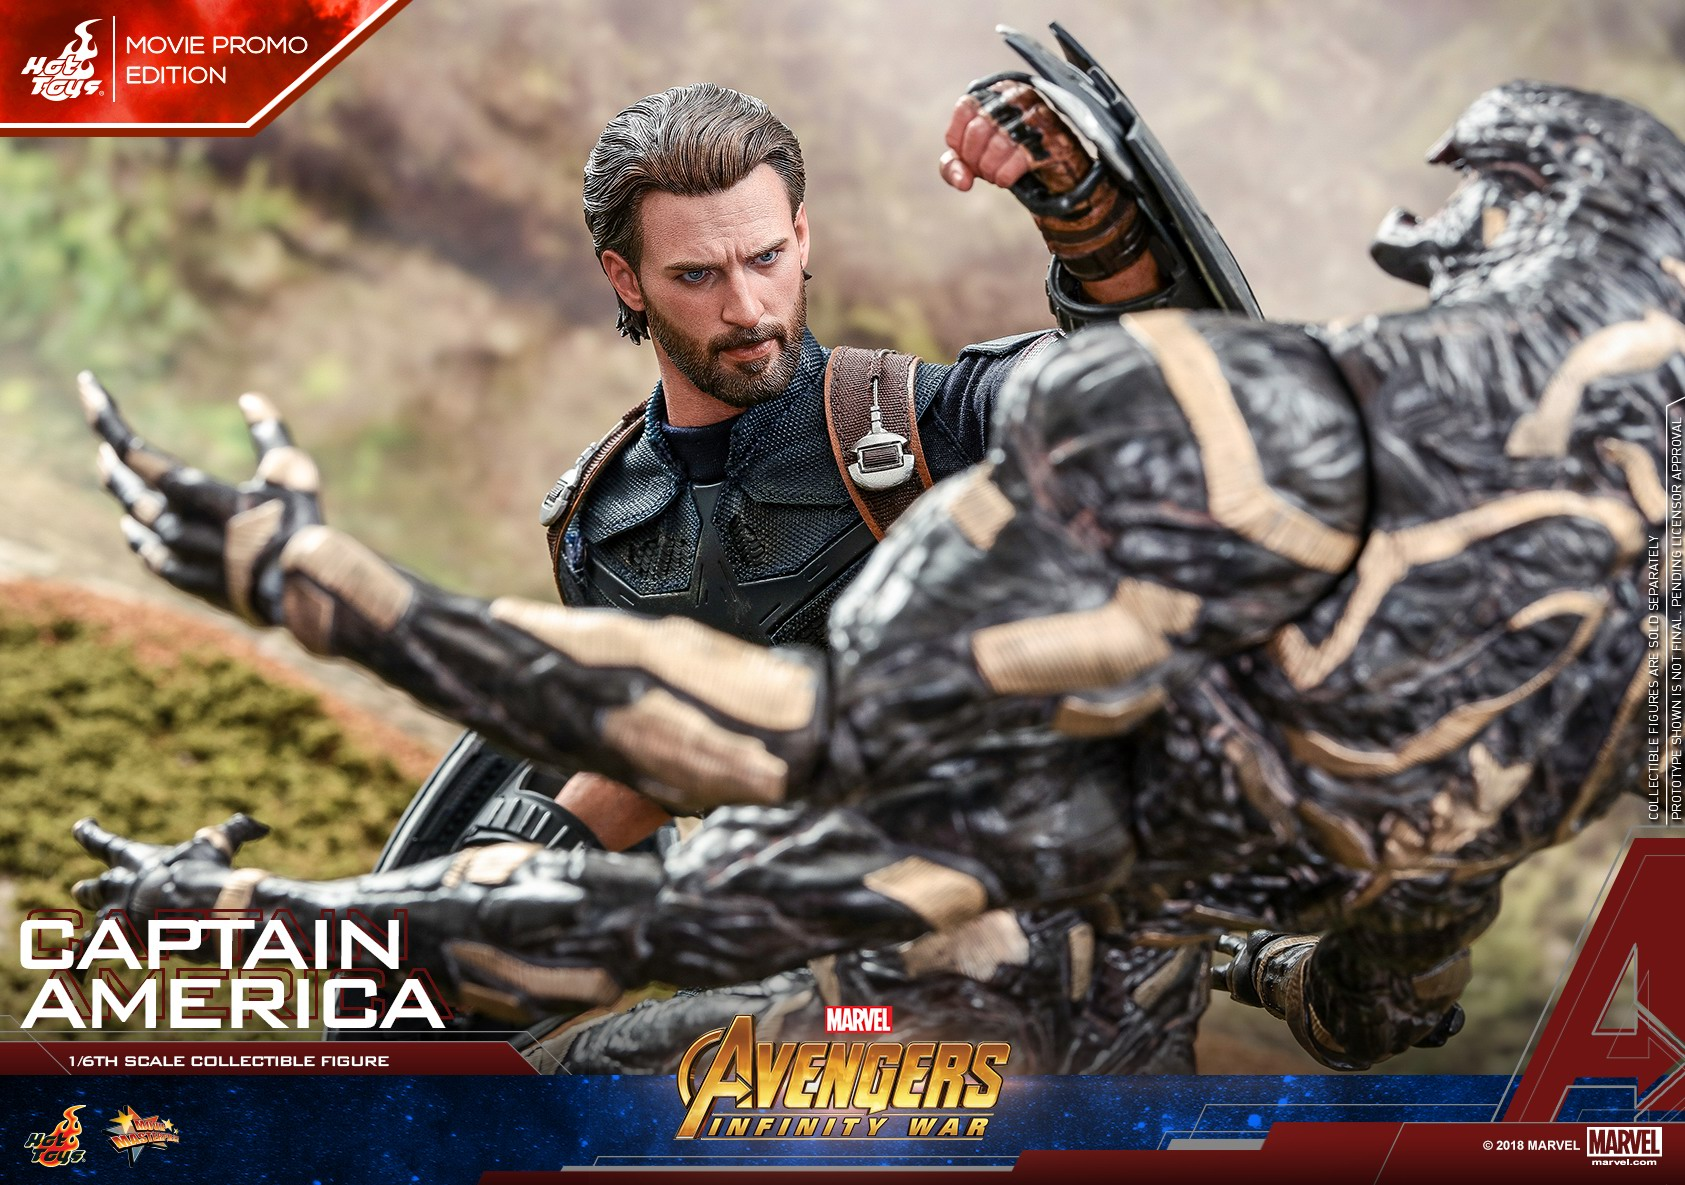 Hot Toys - AIW - Captain America collectible figure (Movie Promo)_PR11.jpg